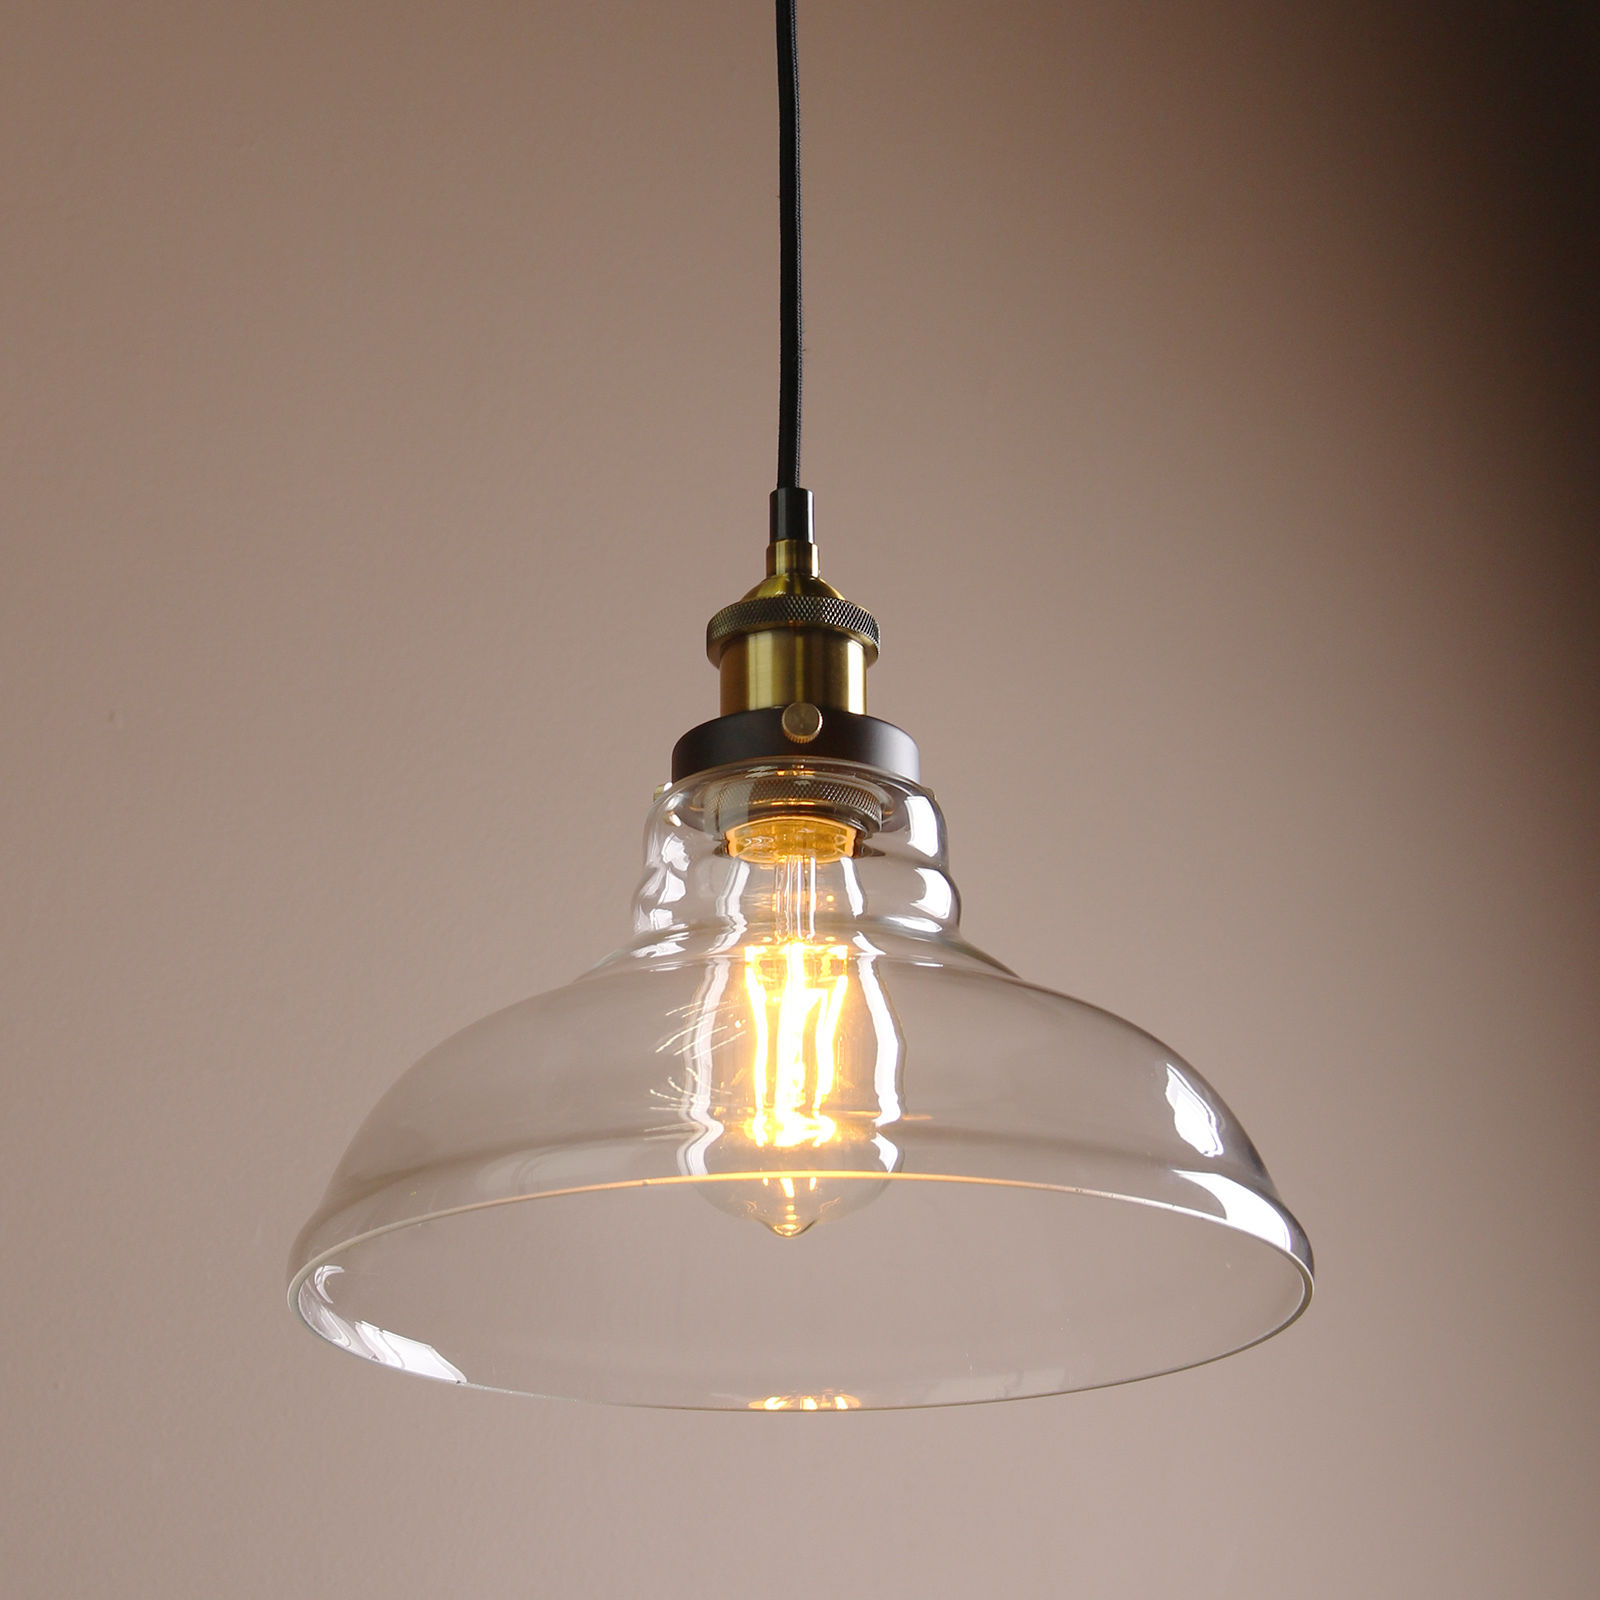 Permo Pendant Light Chandelier Vintage Industrial Clear